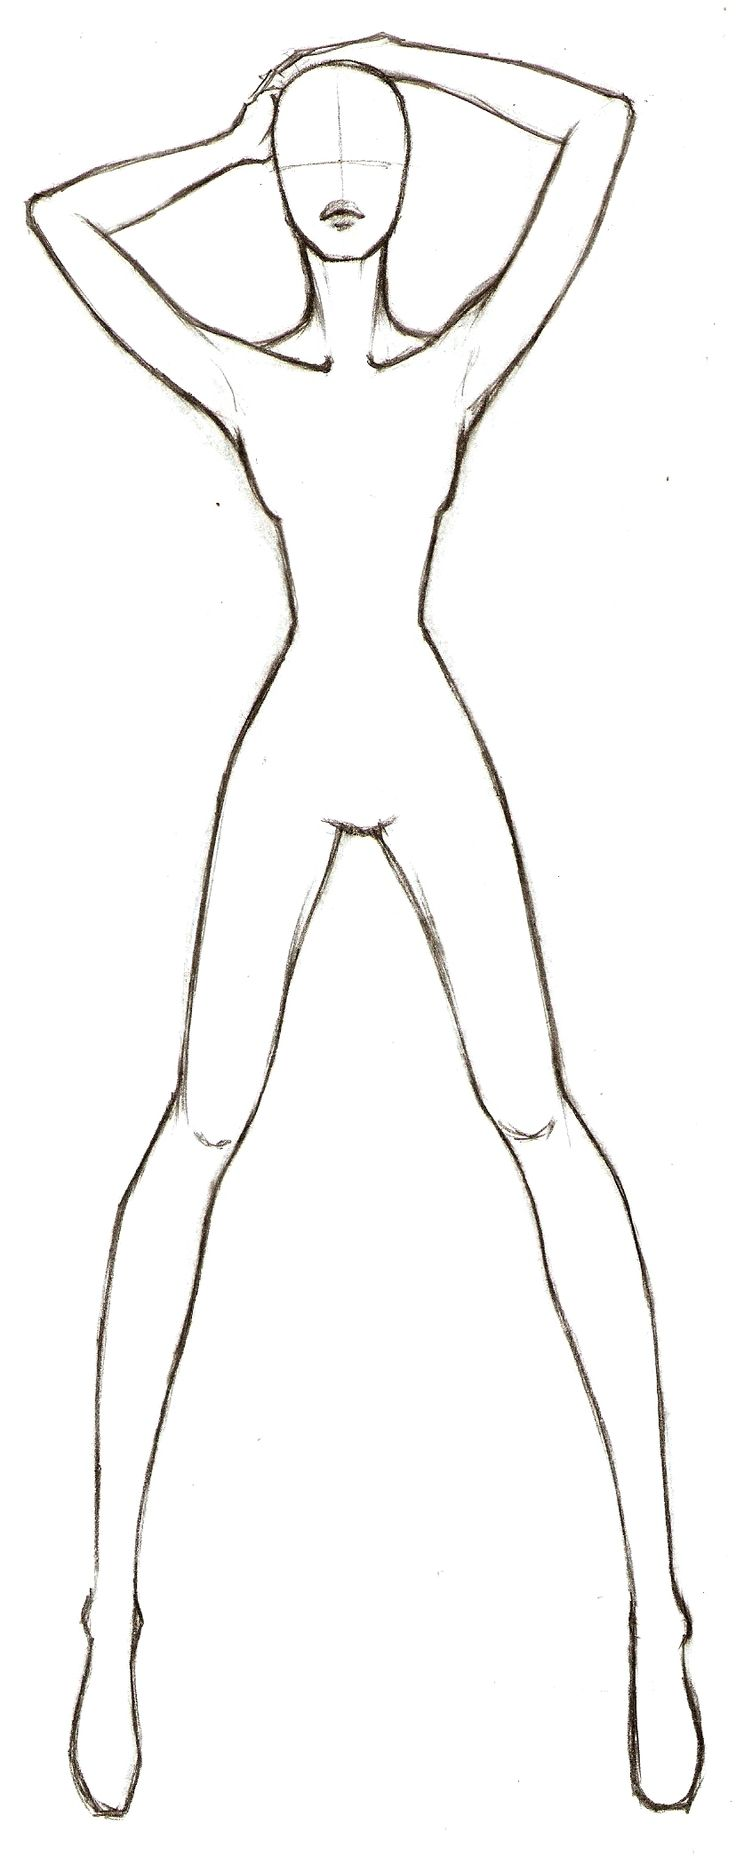 Drawn figurine active Pin on Best 25+ on